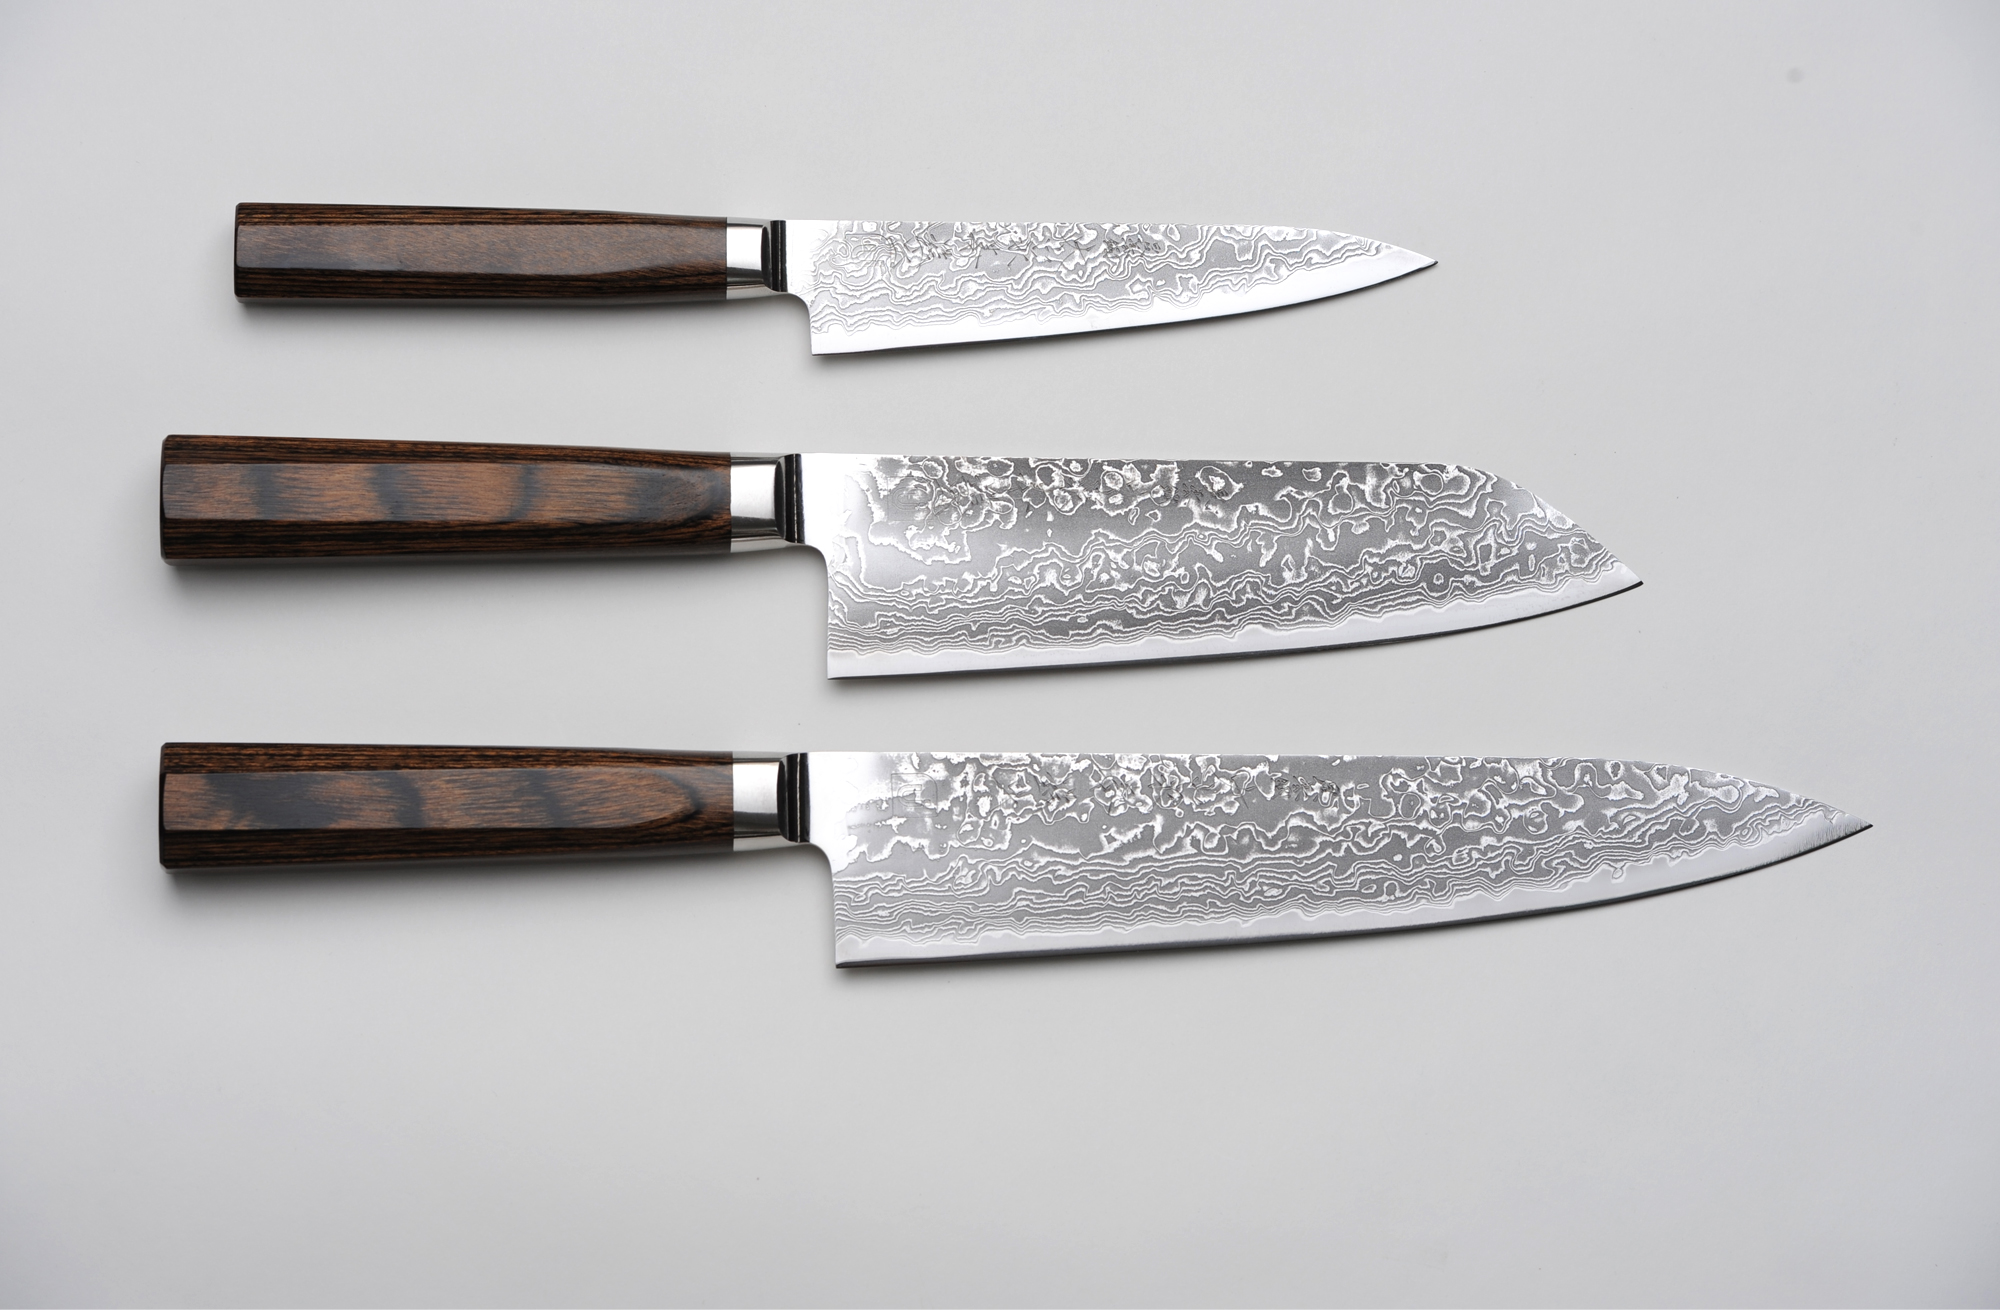 Unique Kitchen Knife Sets Can Somebody Please Explain The Difference Between